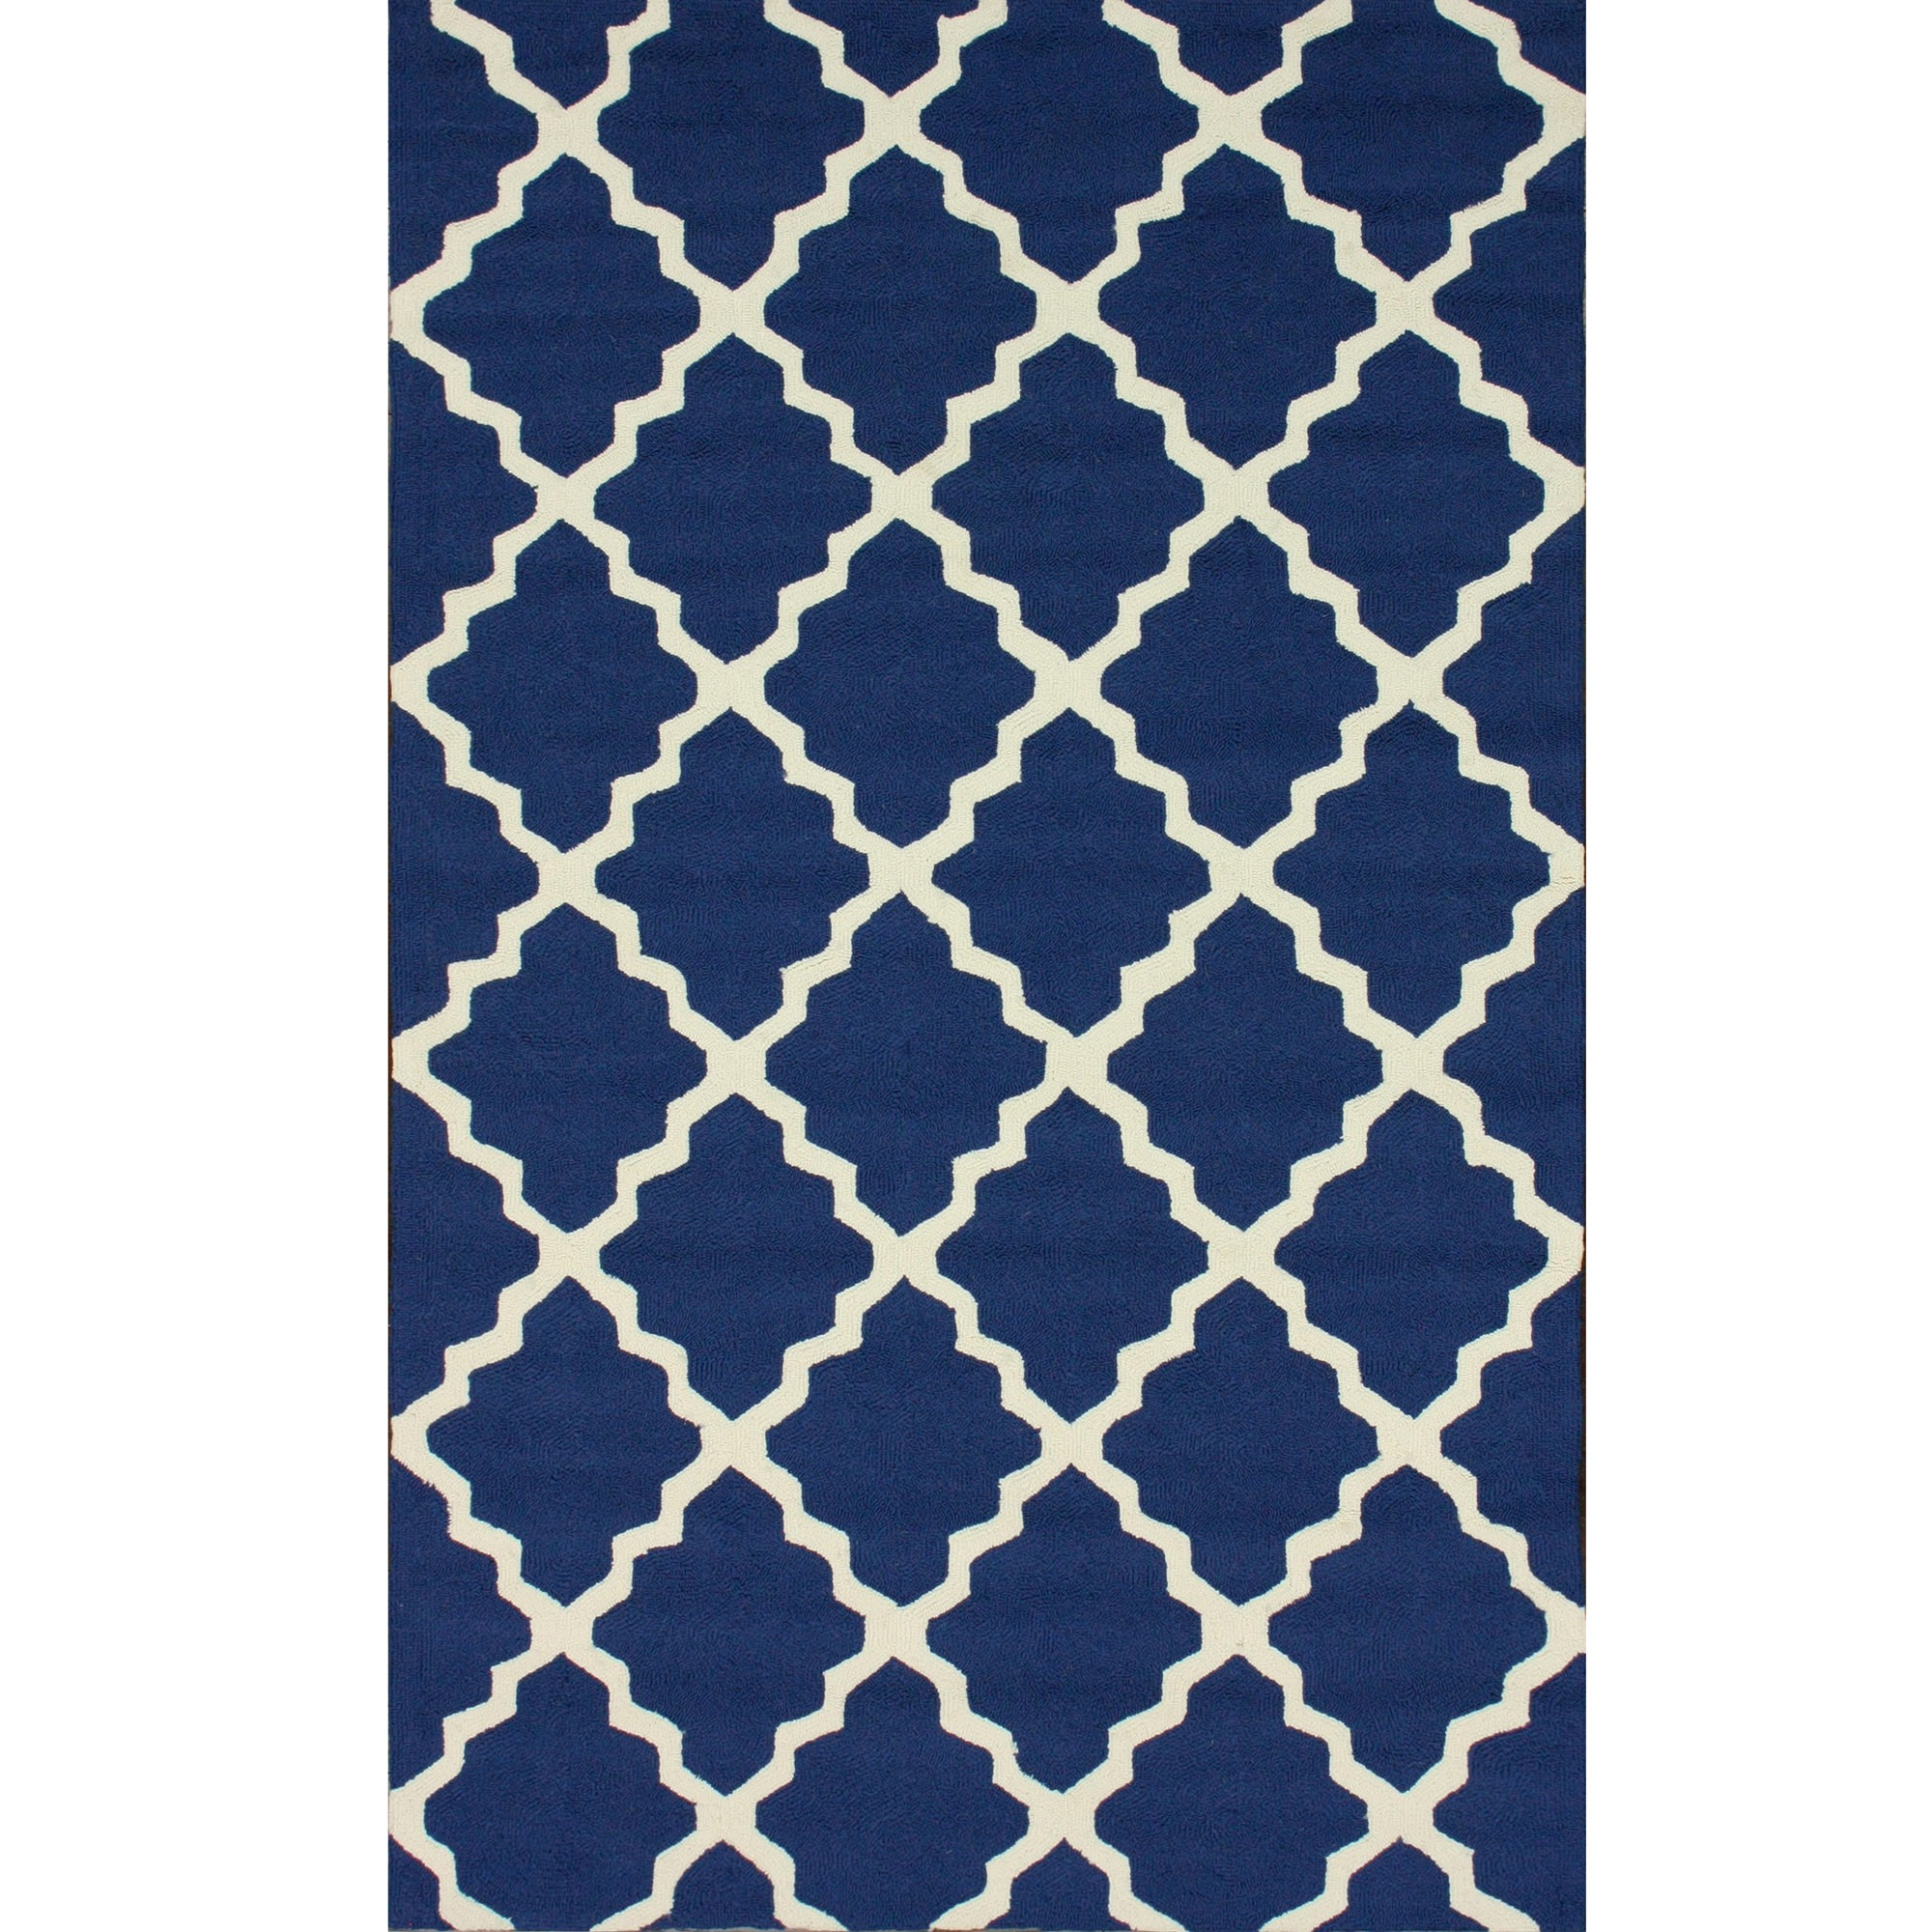 Navy Blue Outdoor Trellis Rug 4ft X 6ft